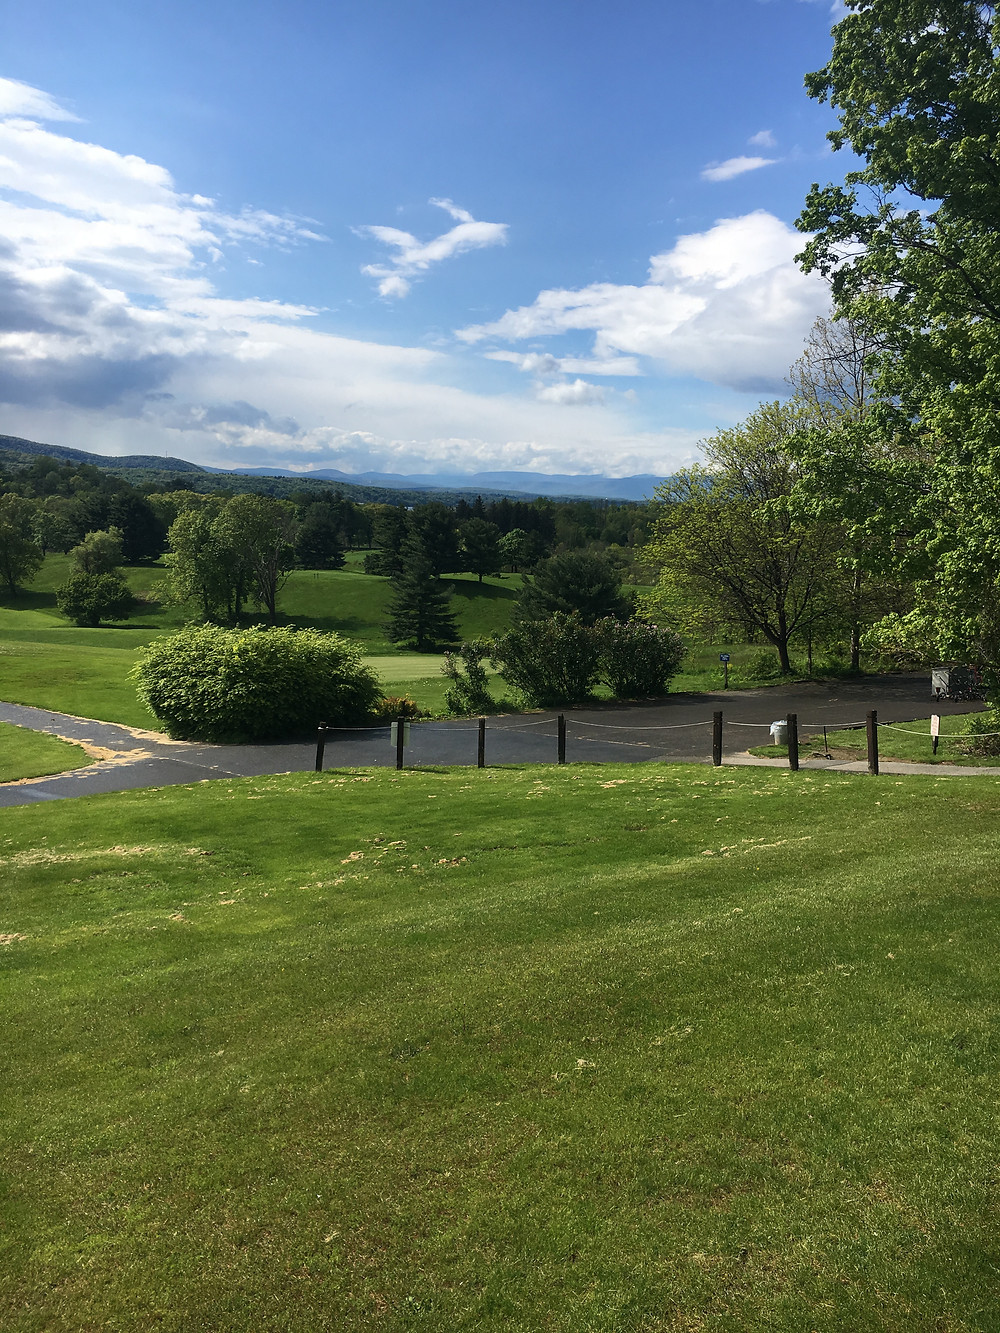 Dinsmore golf course Rhinebeck